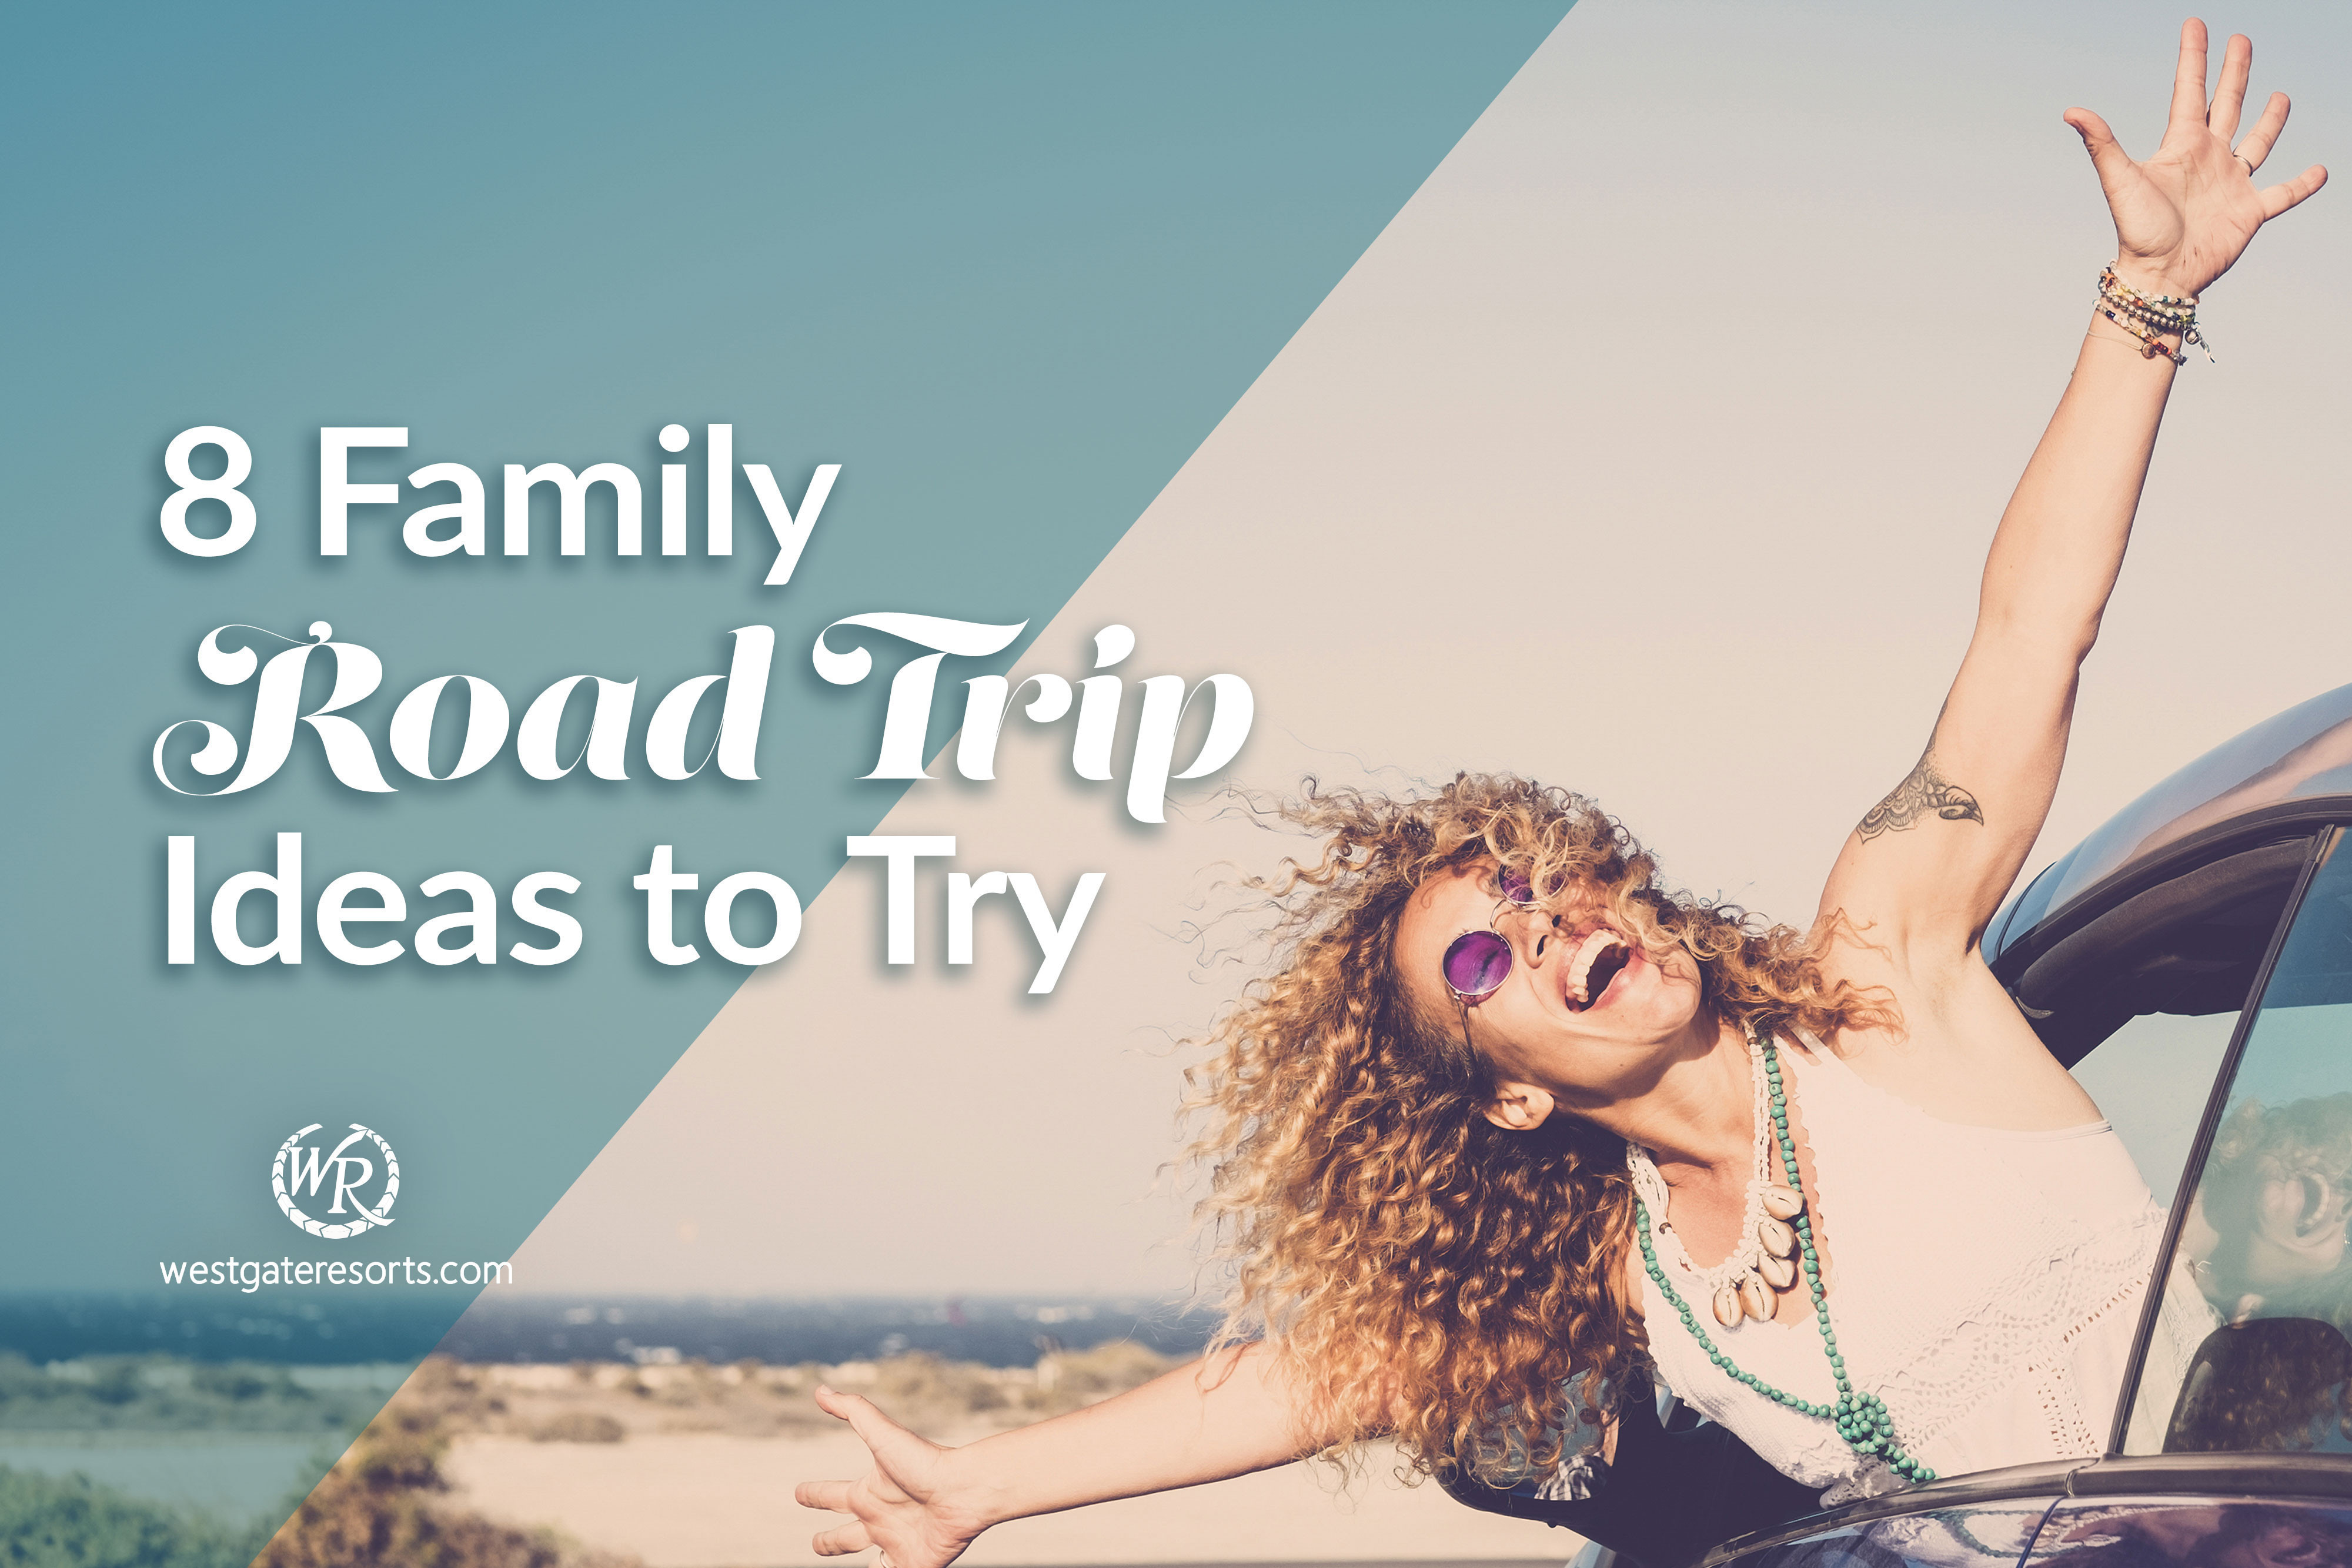 8 Family Road Trip Ideas to Try